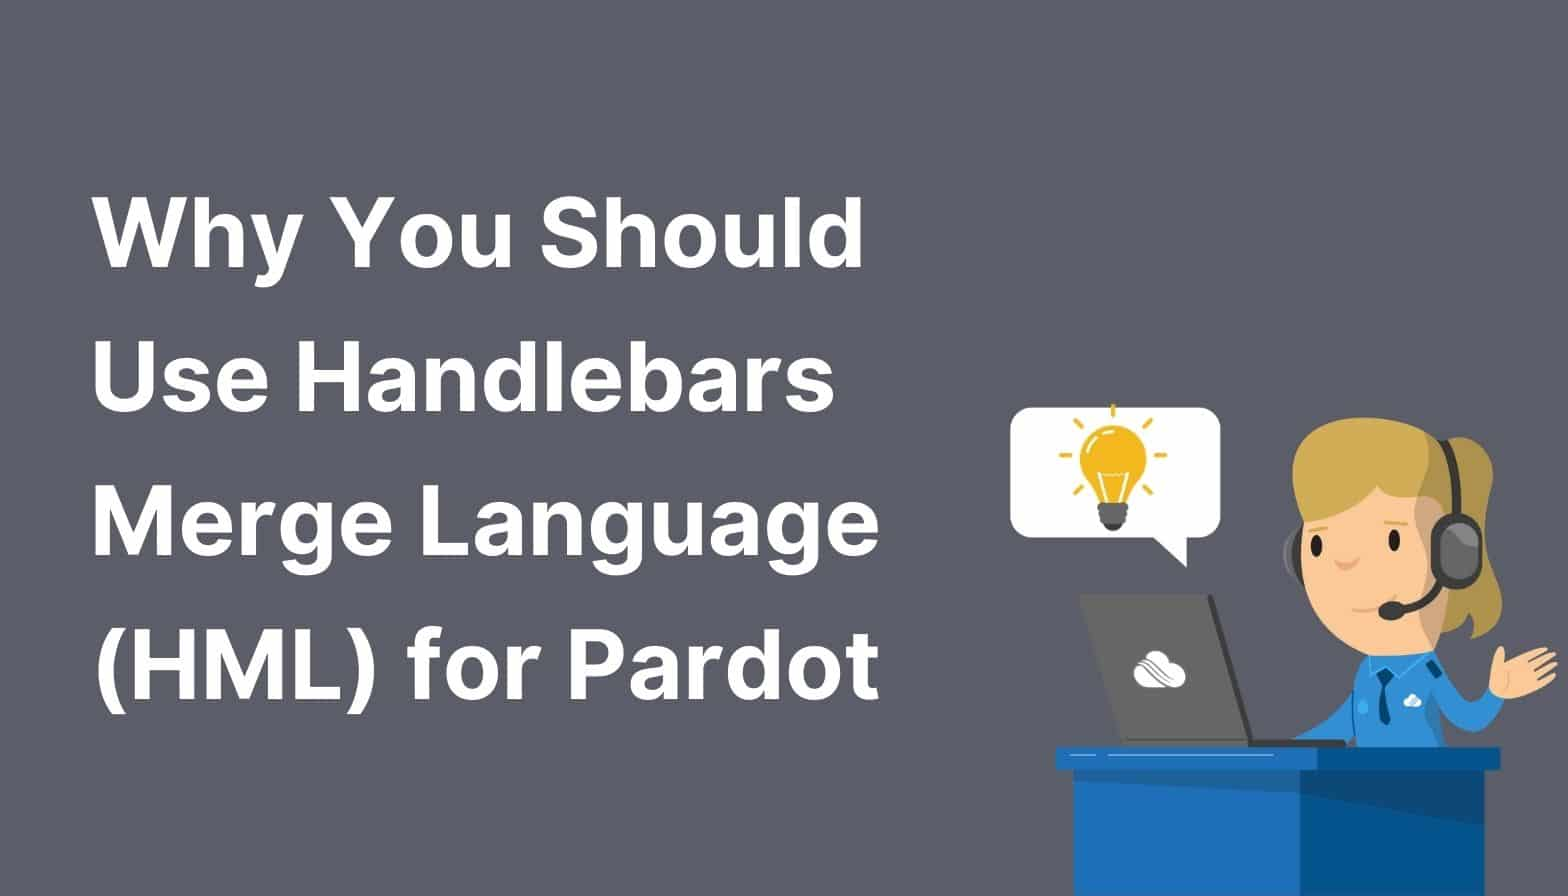 Why You Should Use HML Language for Pardot